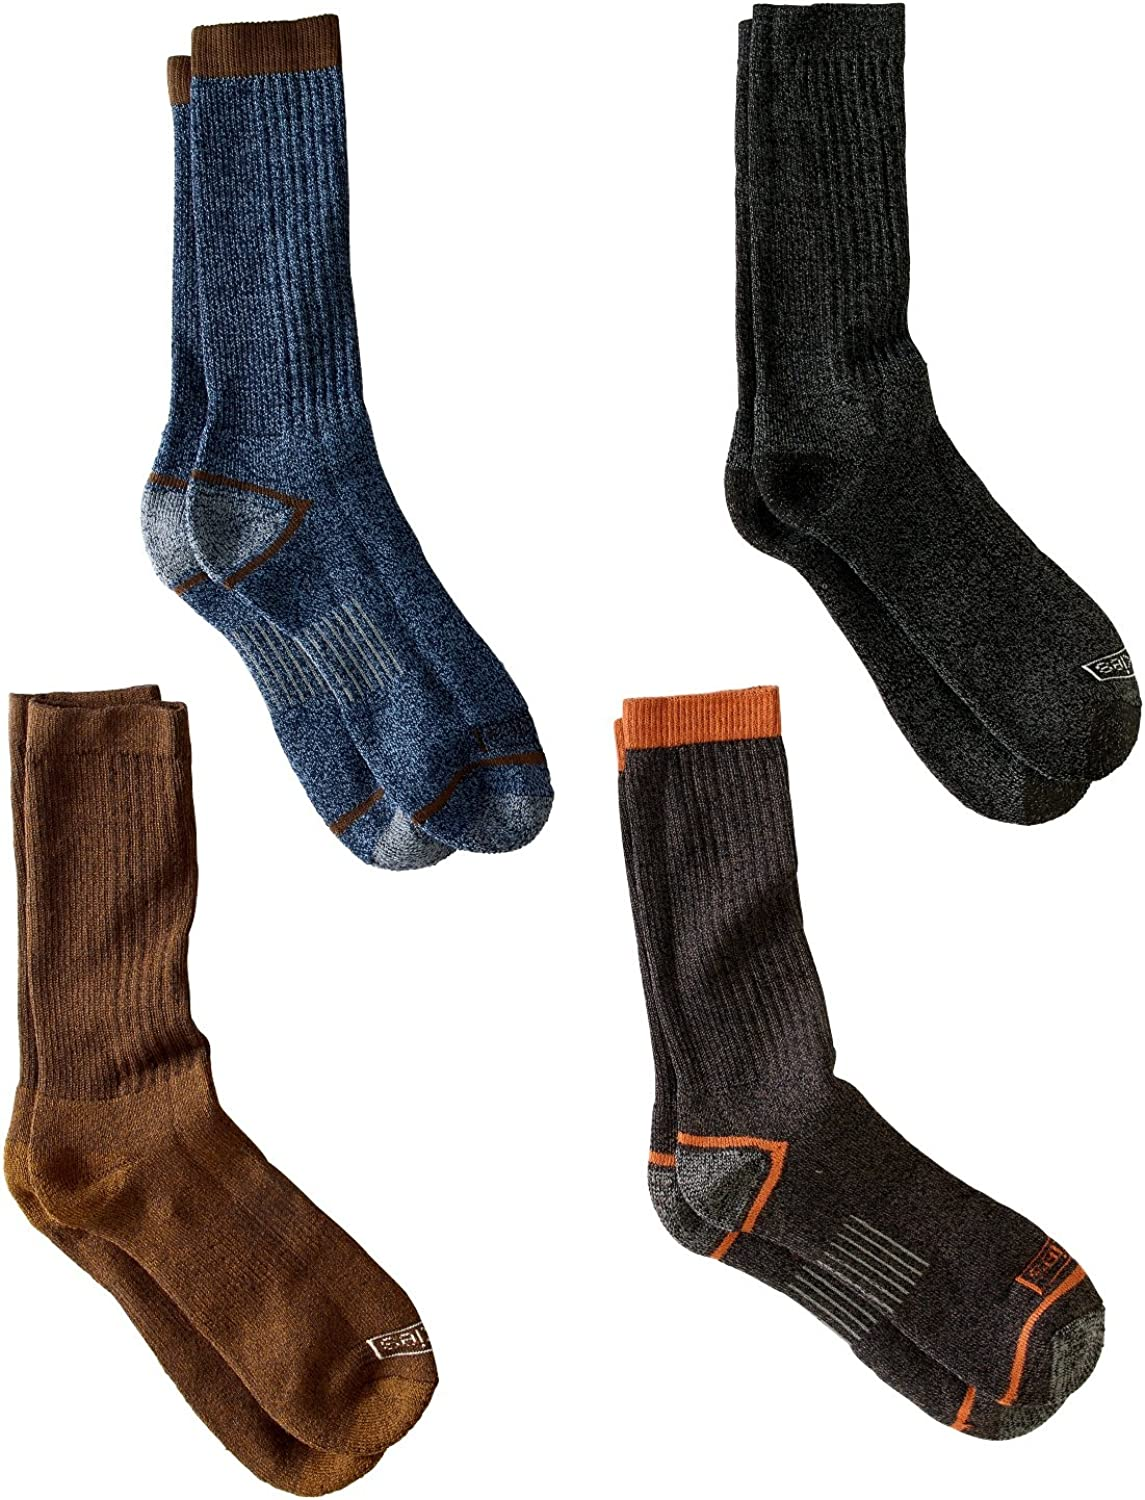 Dickies Men's 4 Pairs Cotton Blend Crew Performance Work Socks 6-12 - Assorted